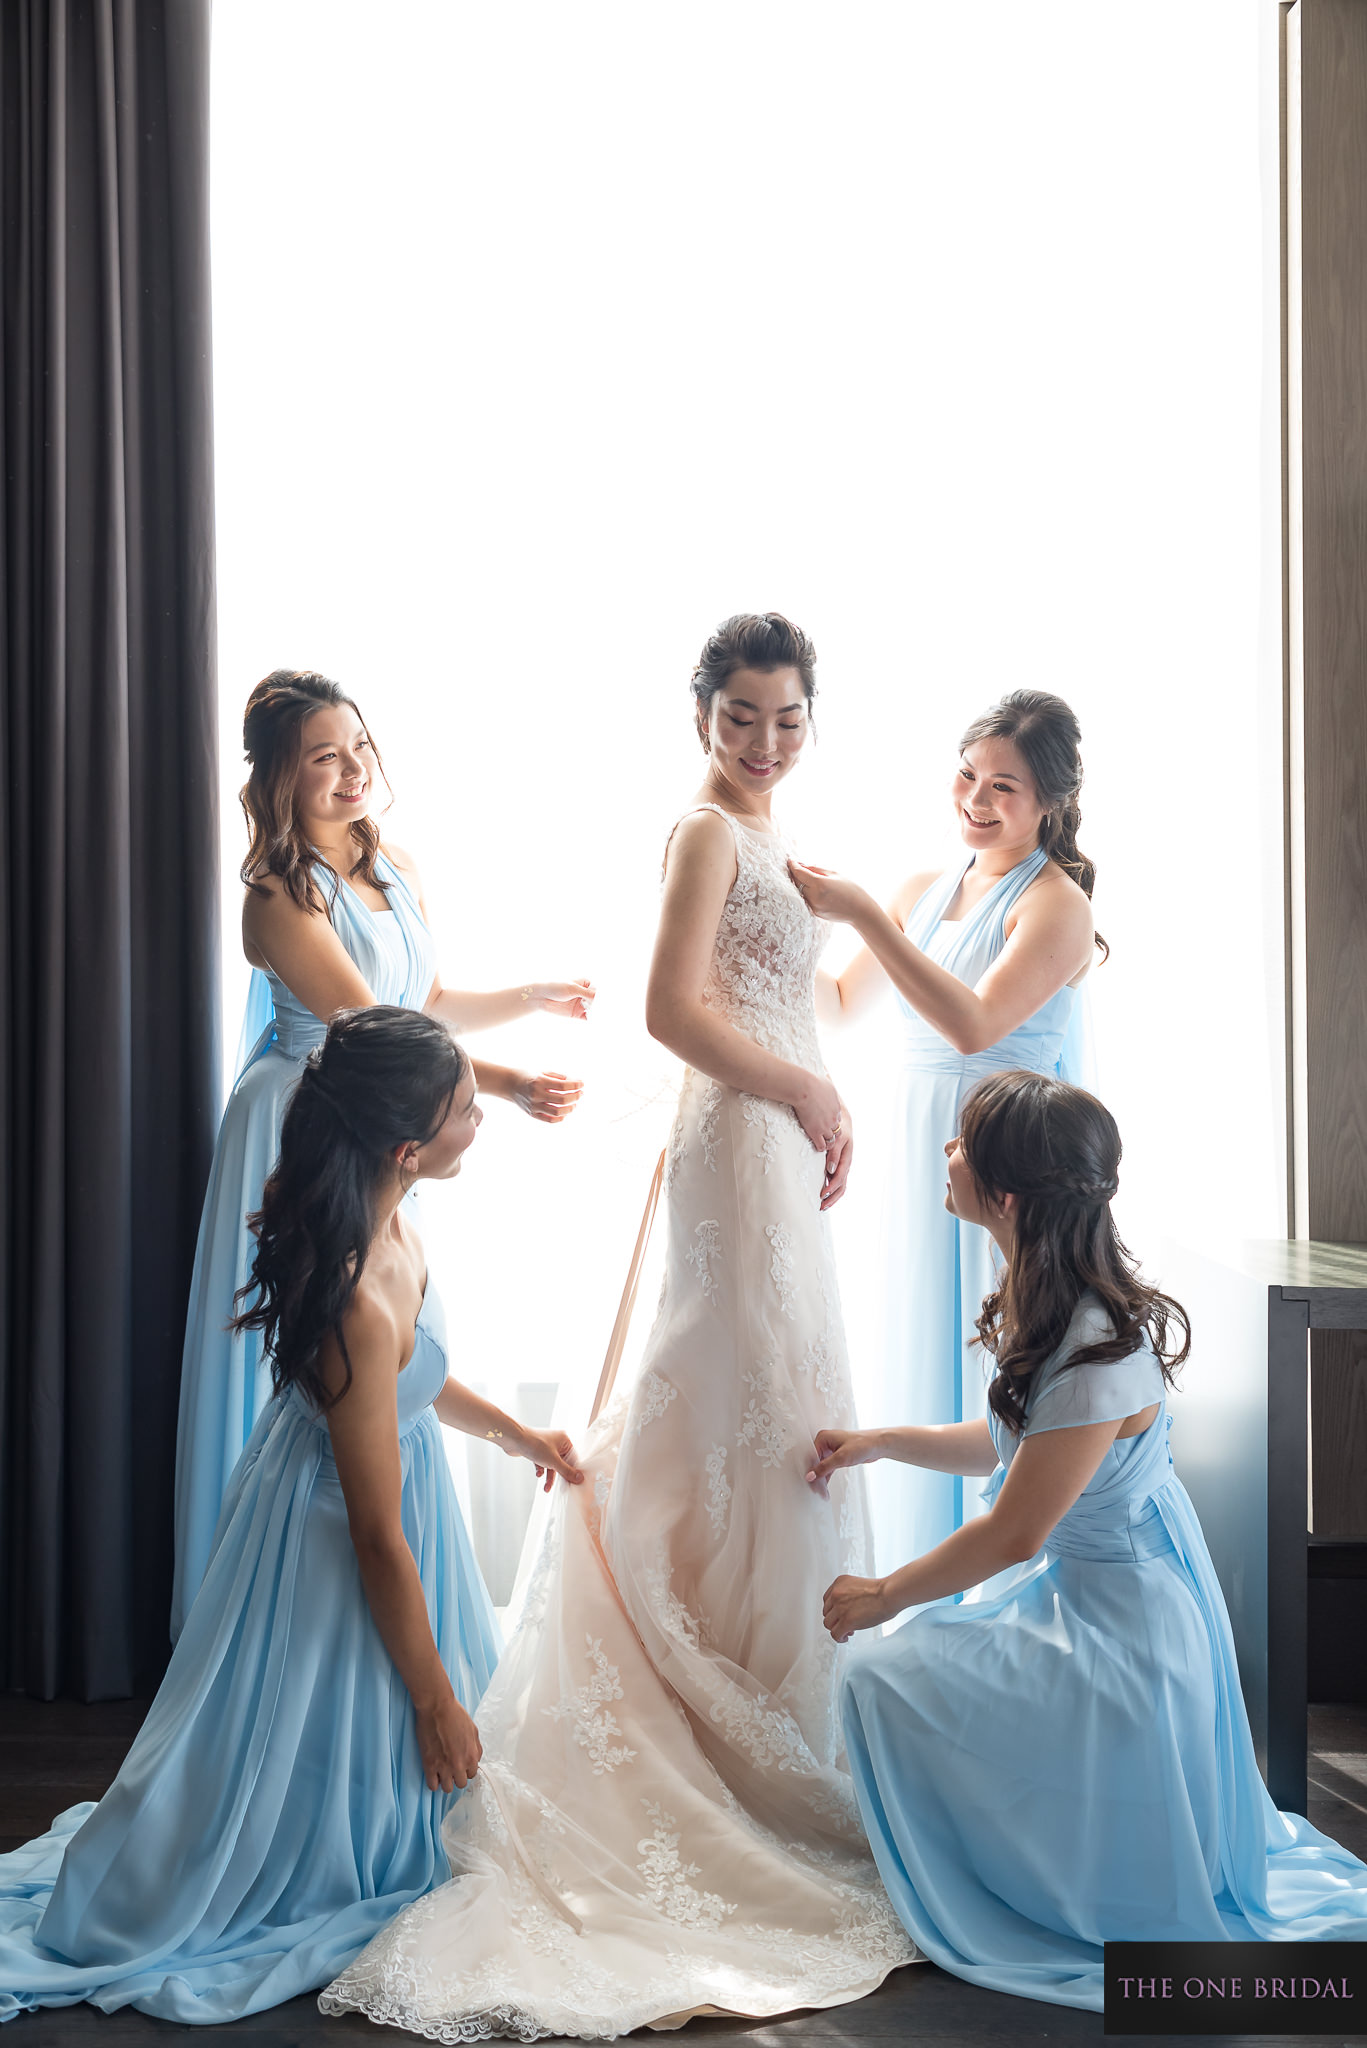 bride-bridesmaids-wedding-the-one-bridal